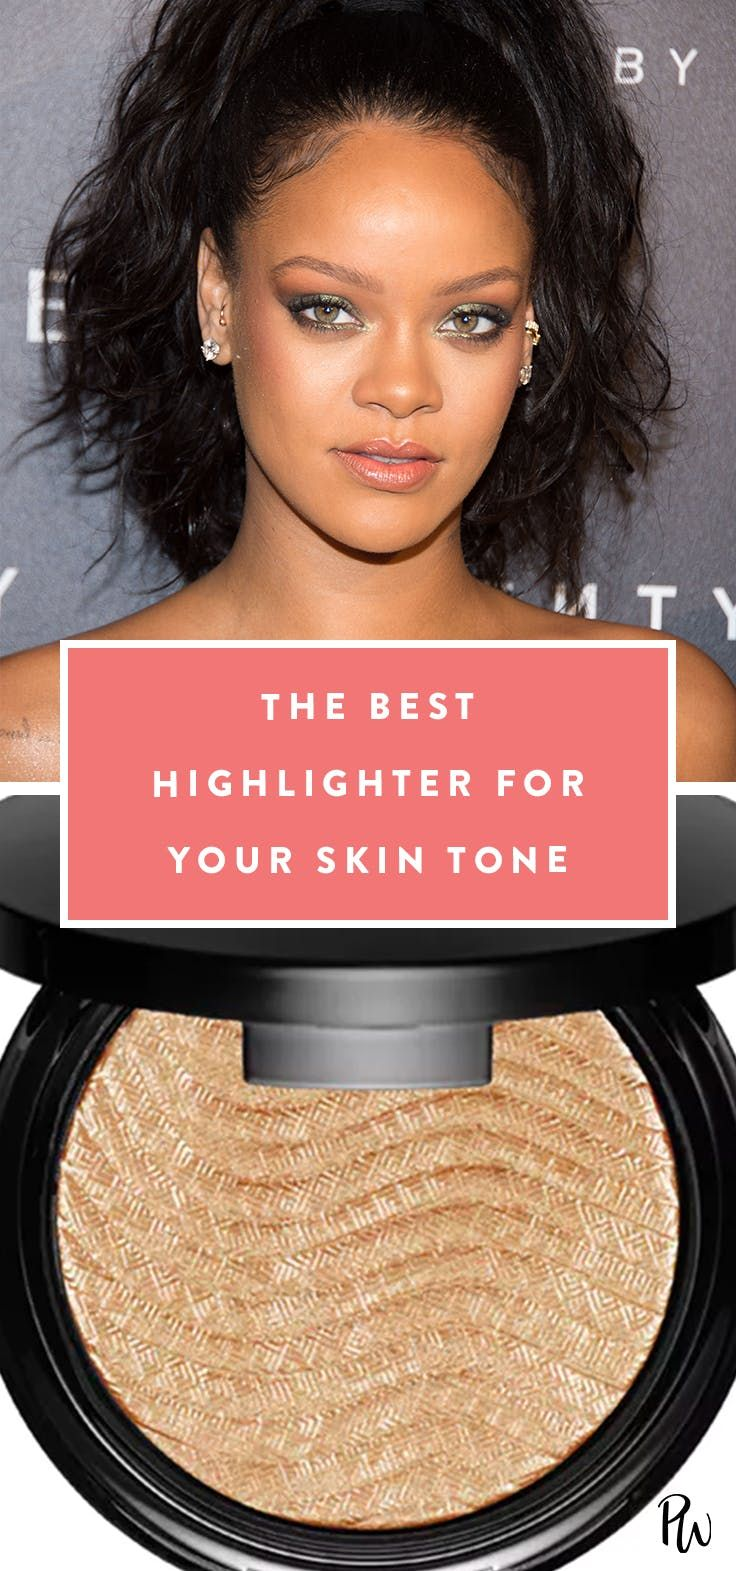 How To Find The Best Highlighter For Your Skin Tone Highlighters